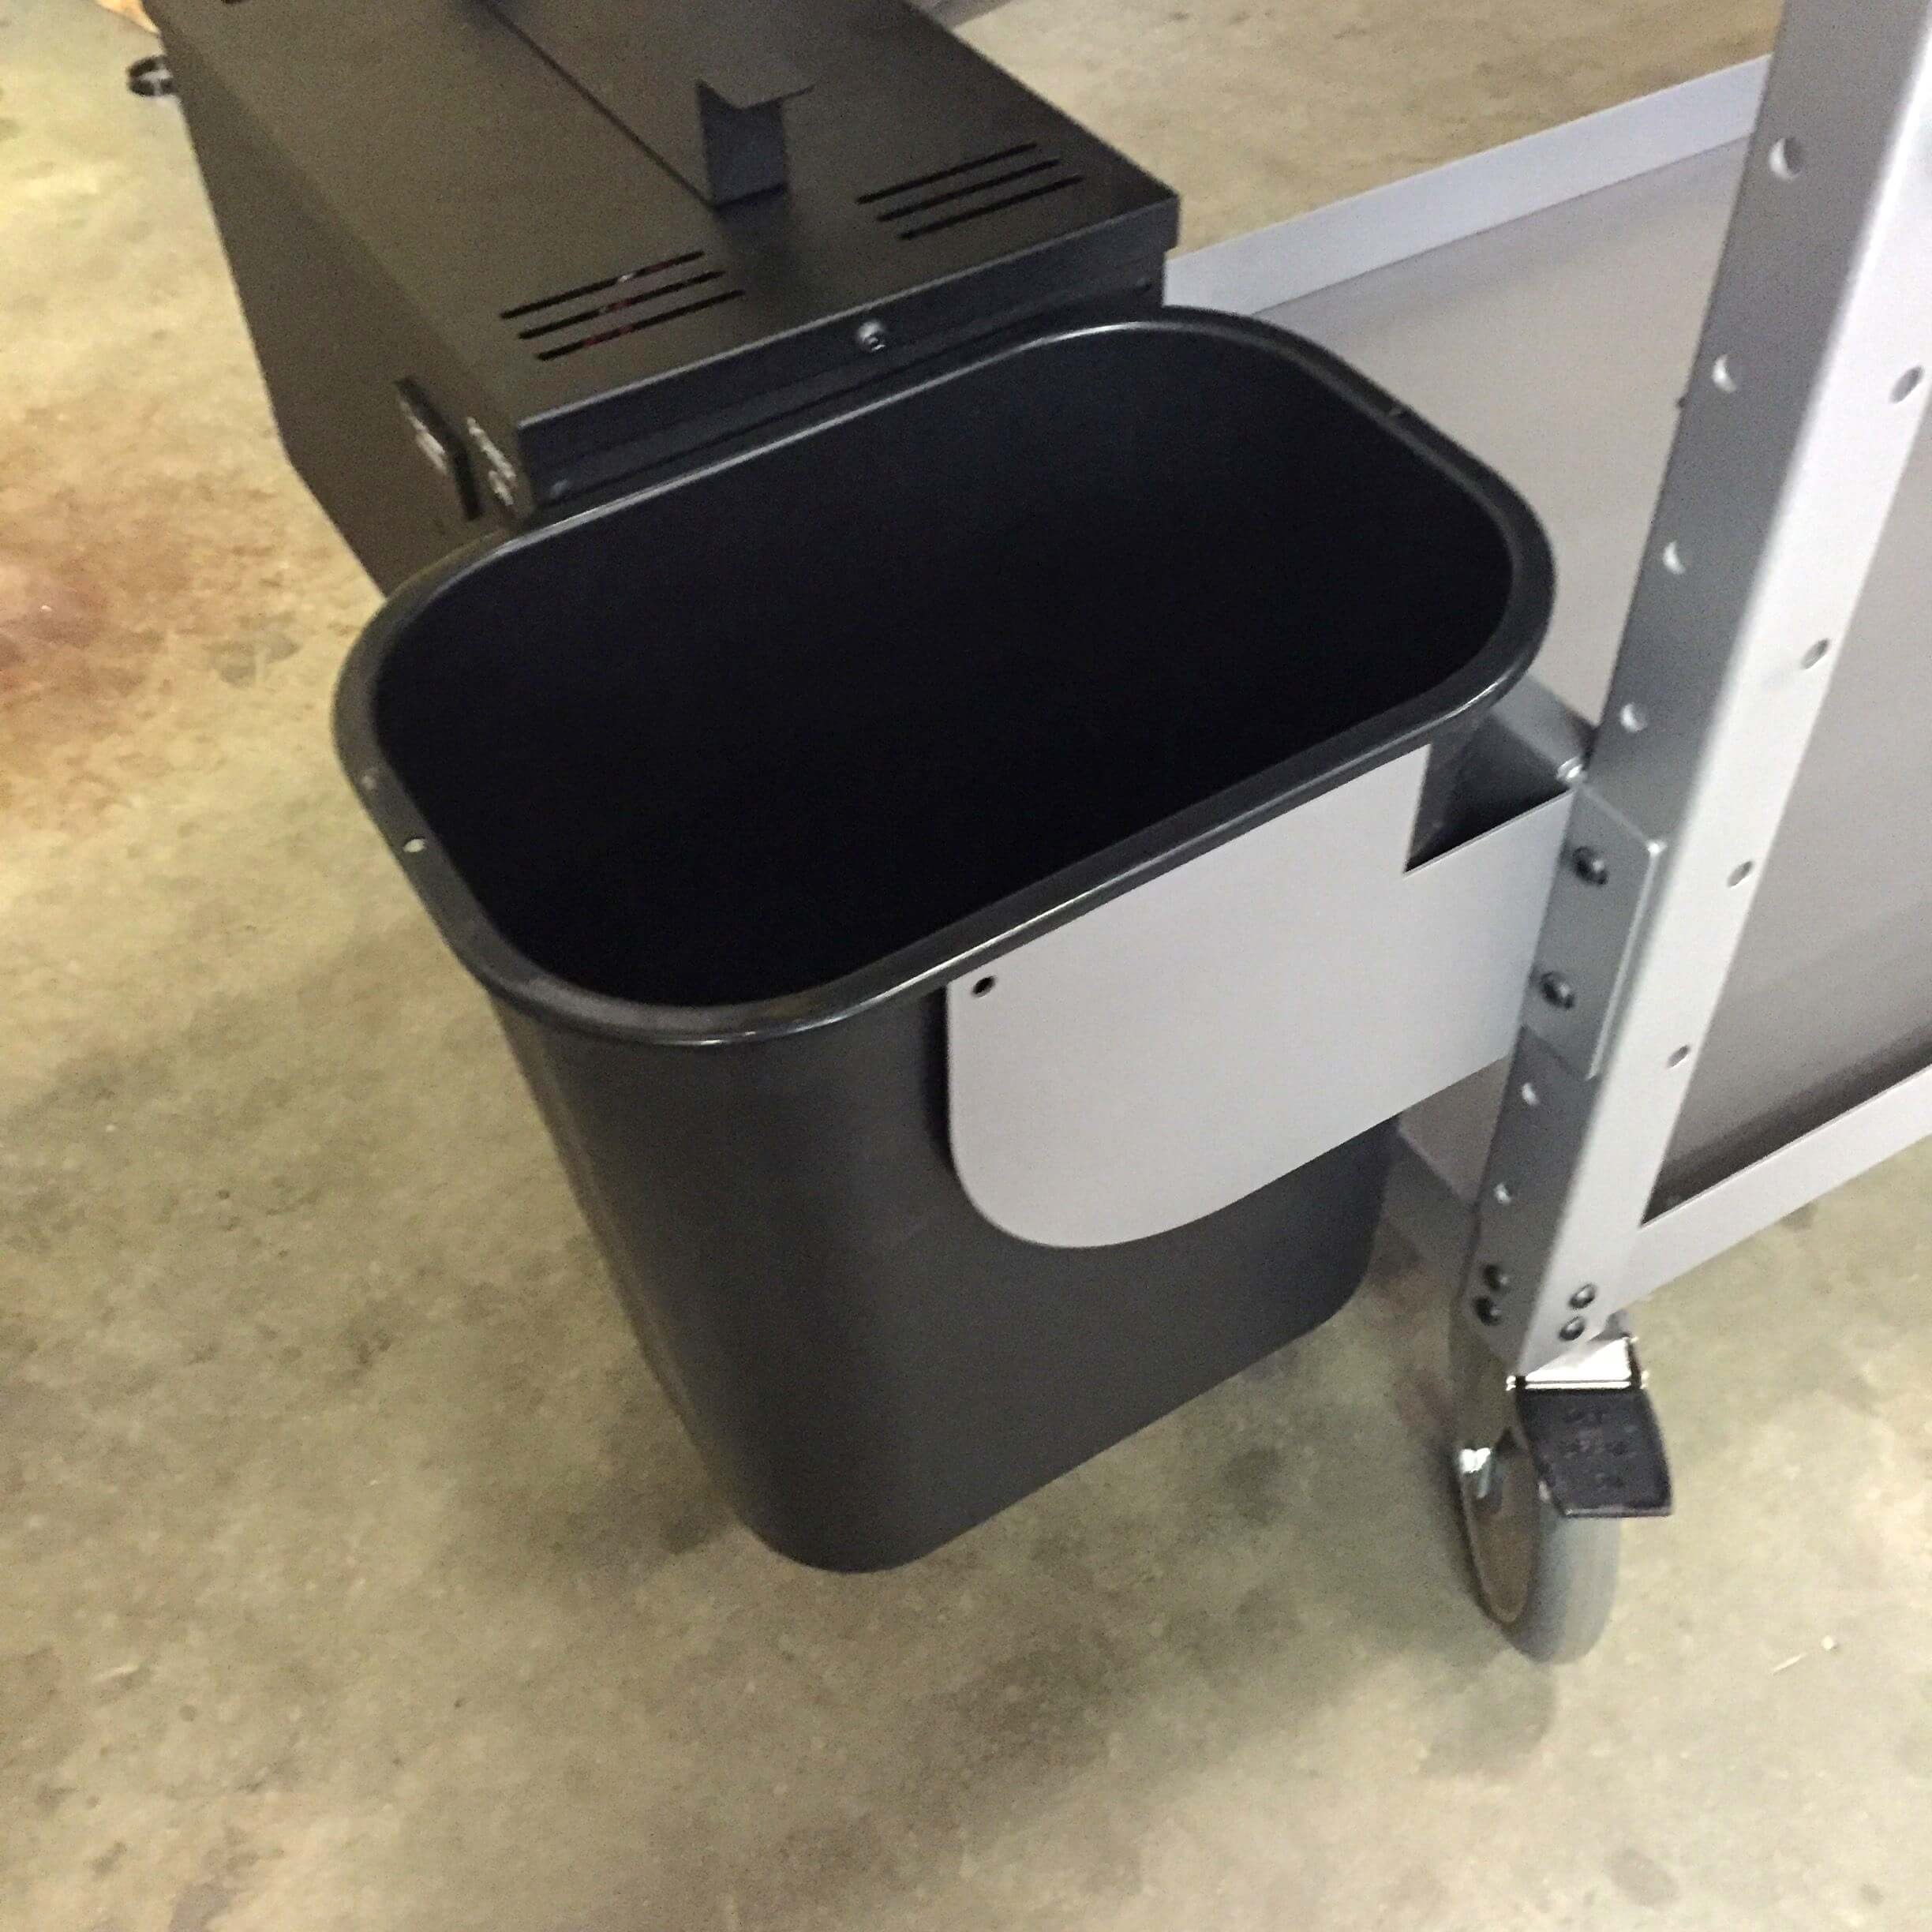 B309 Trash Can Holder for PowerPick Series Mobile Picking Carts by Newcastle Systems